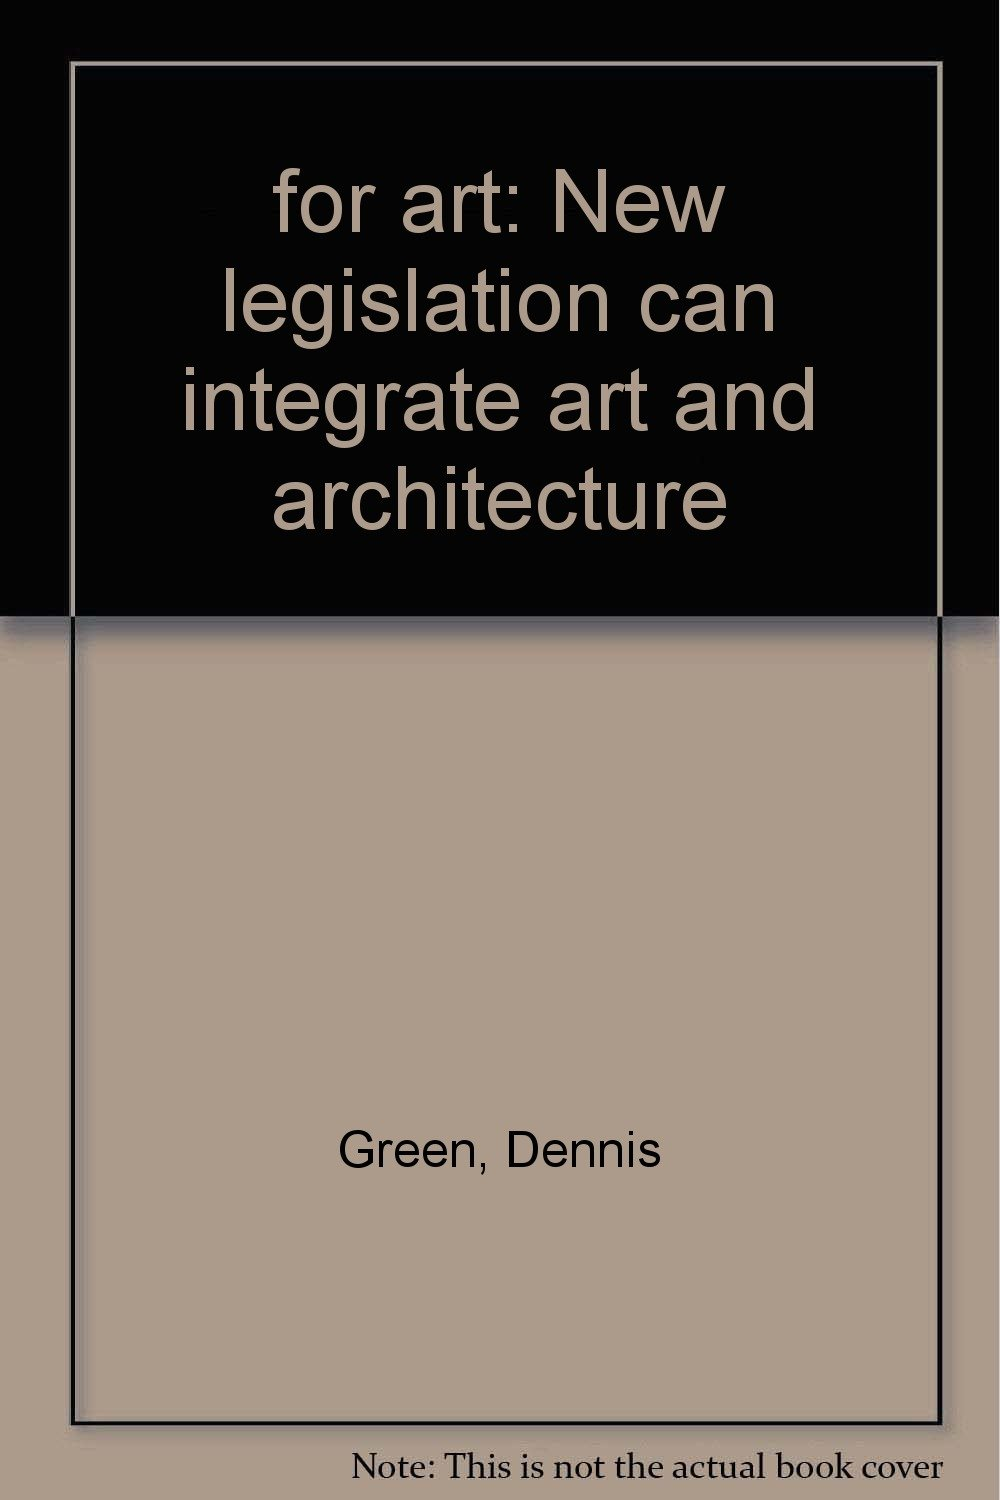 for art new legislation can integrate art and architecture